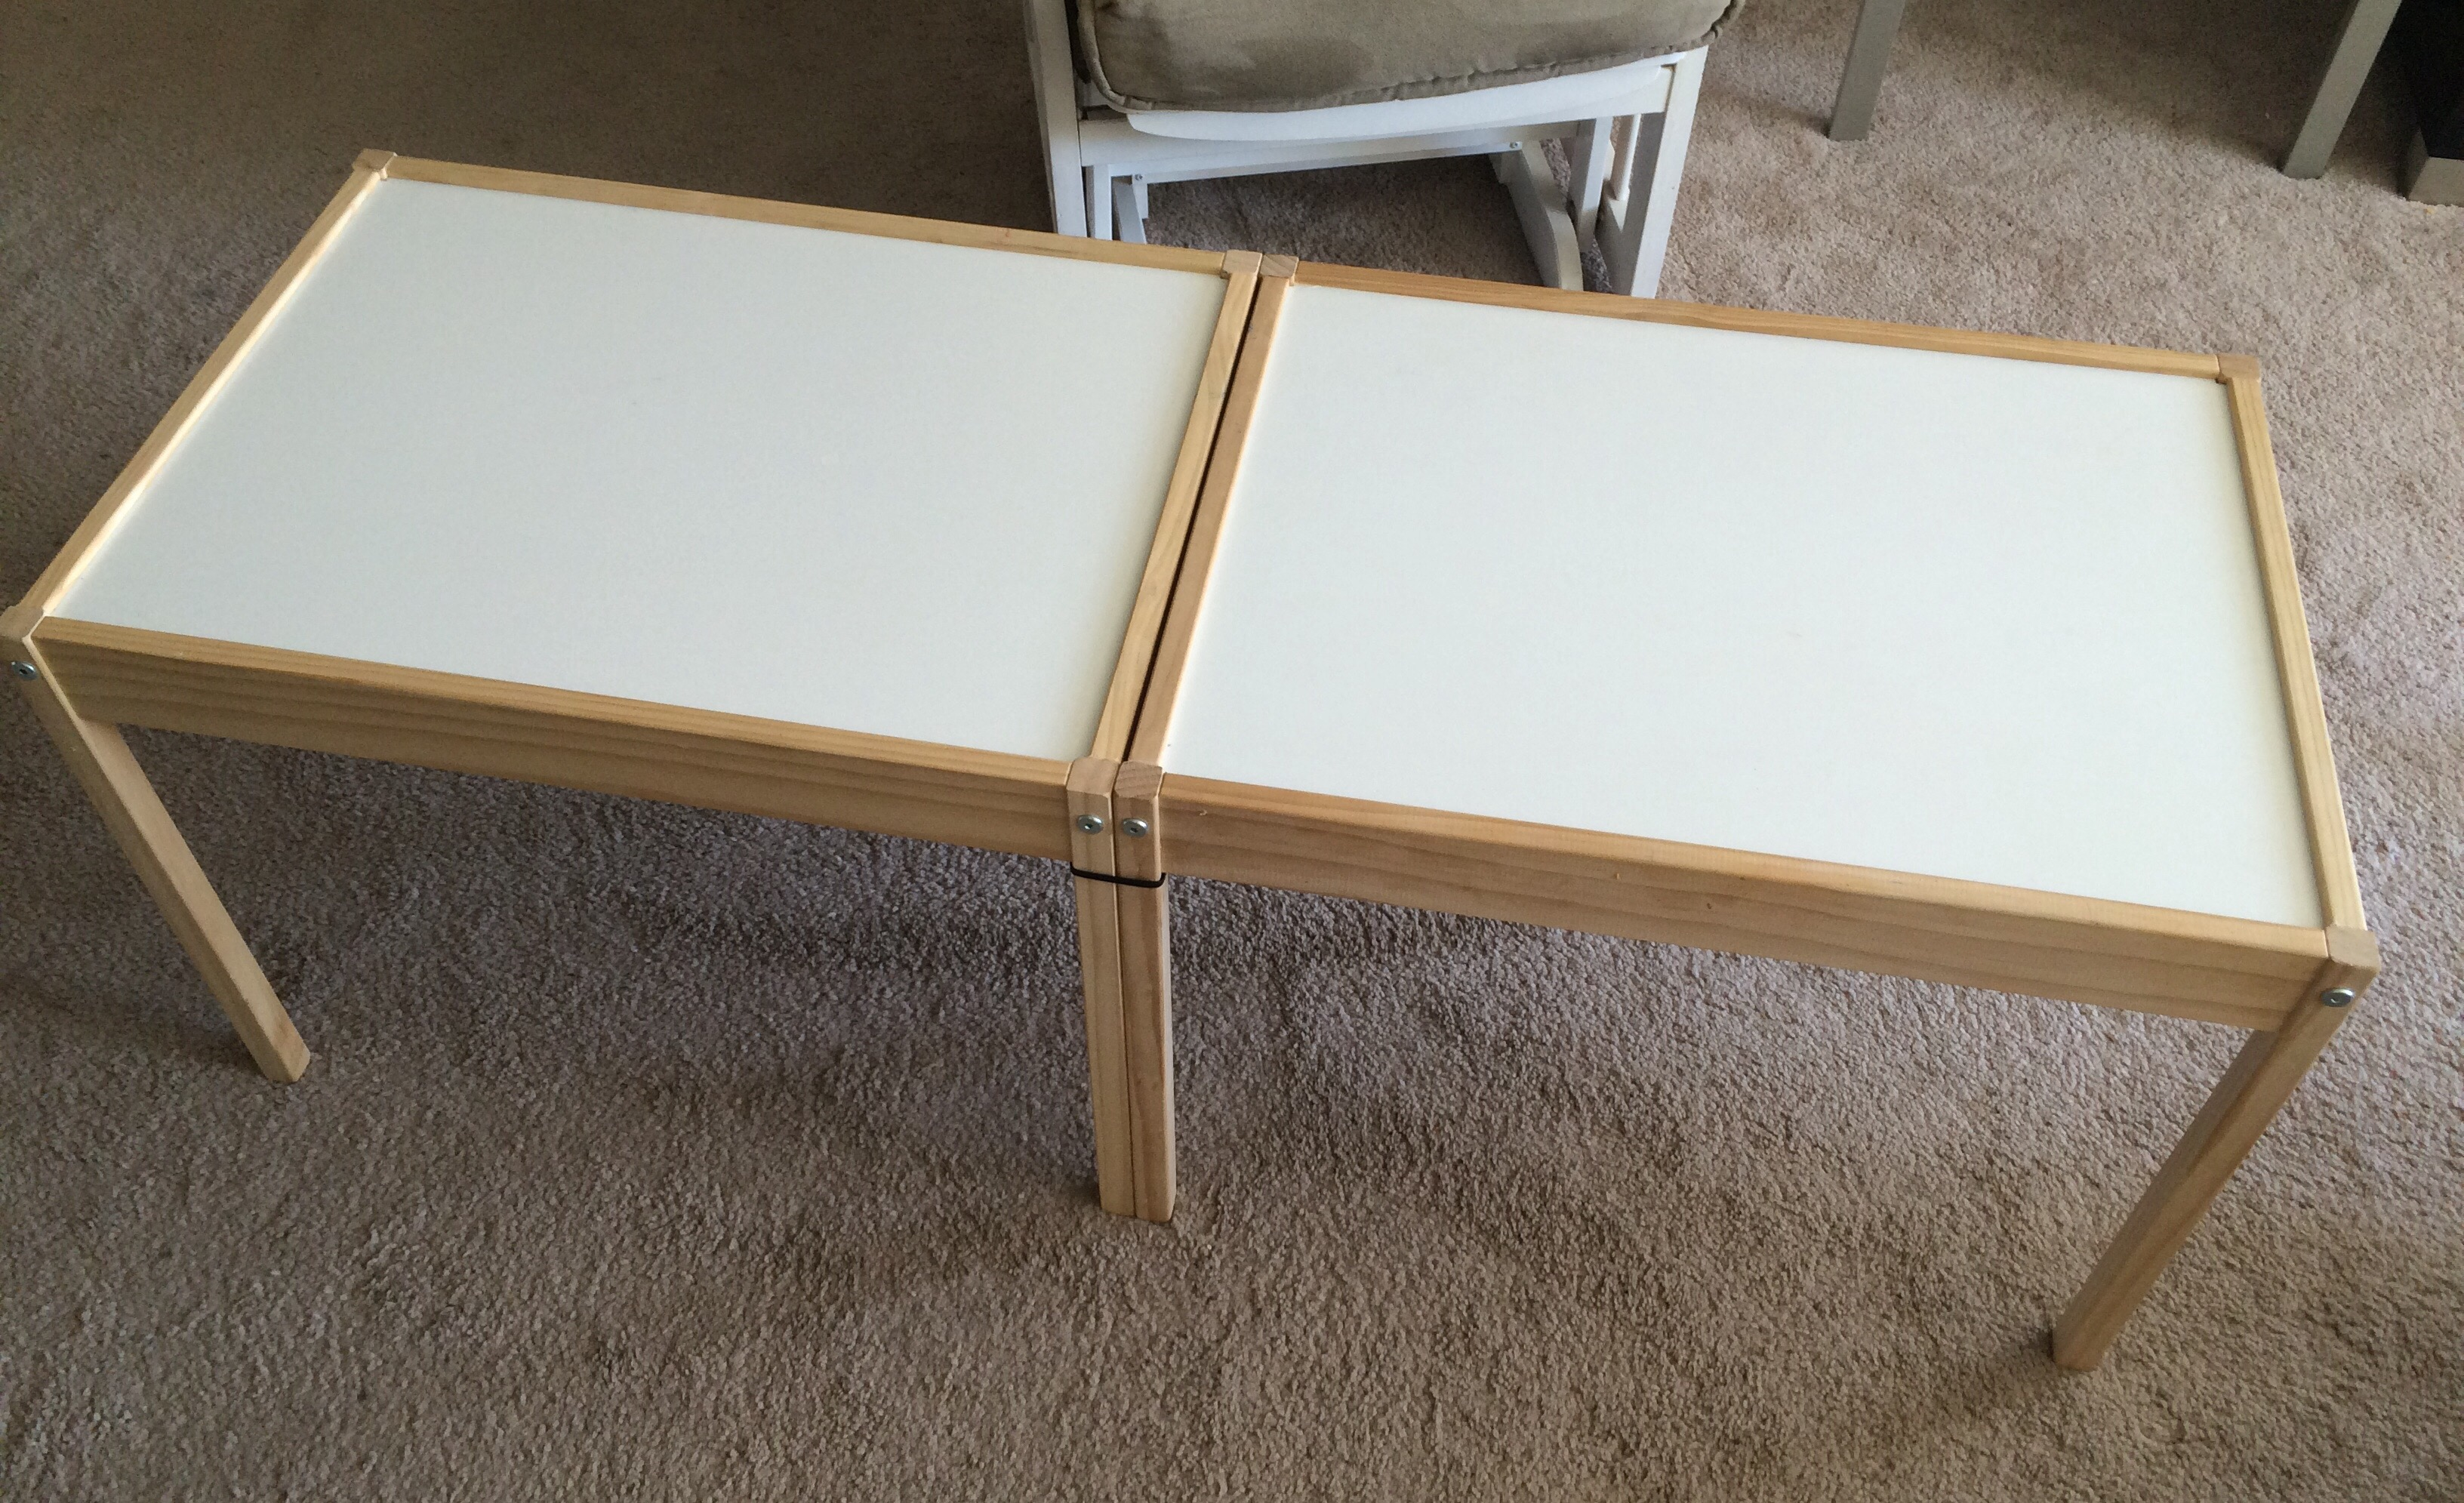 IKEA Hack Train Table – Crazy for D I Y